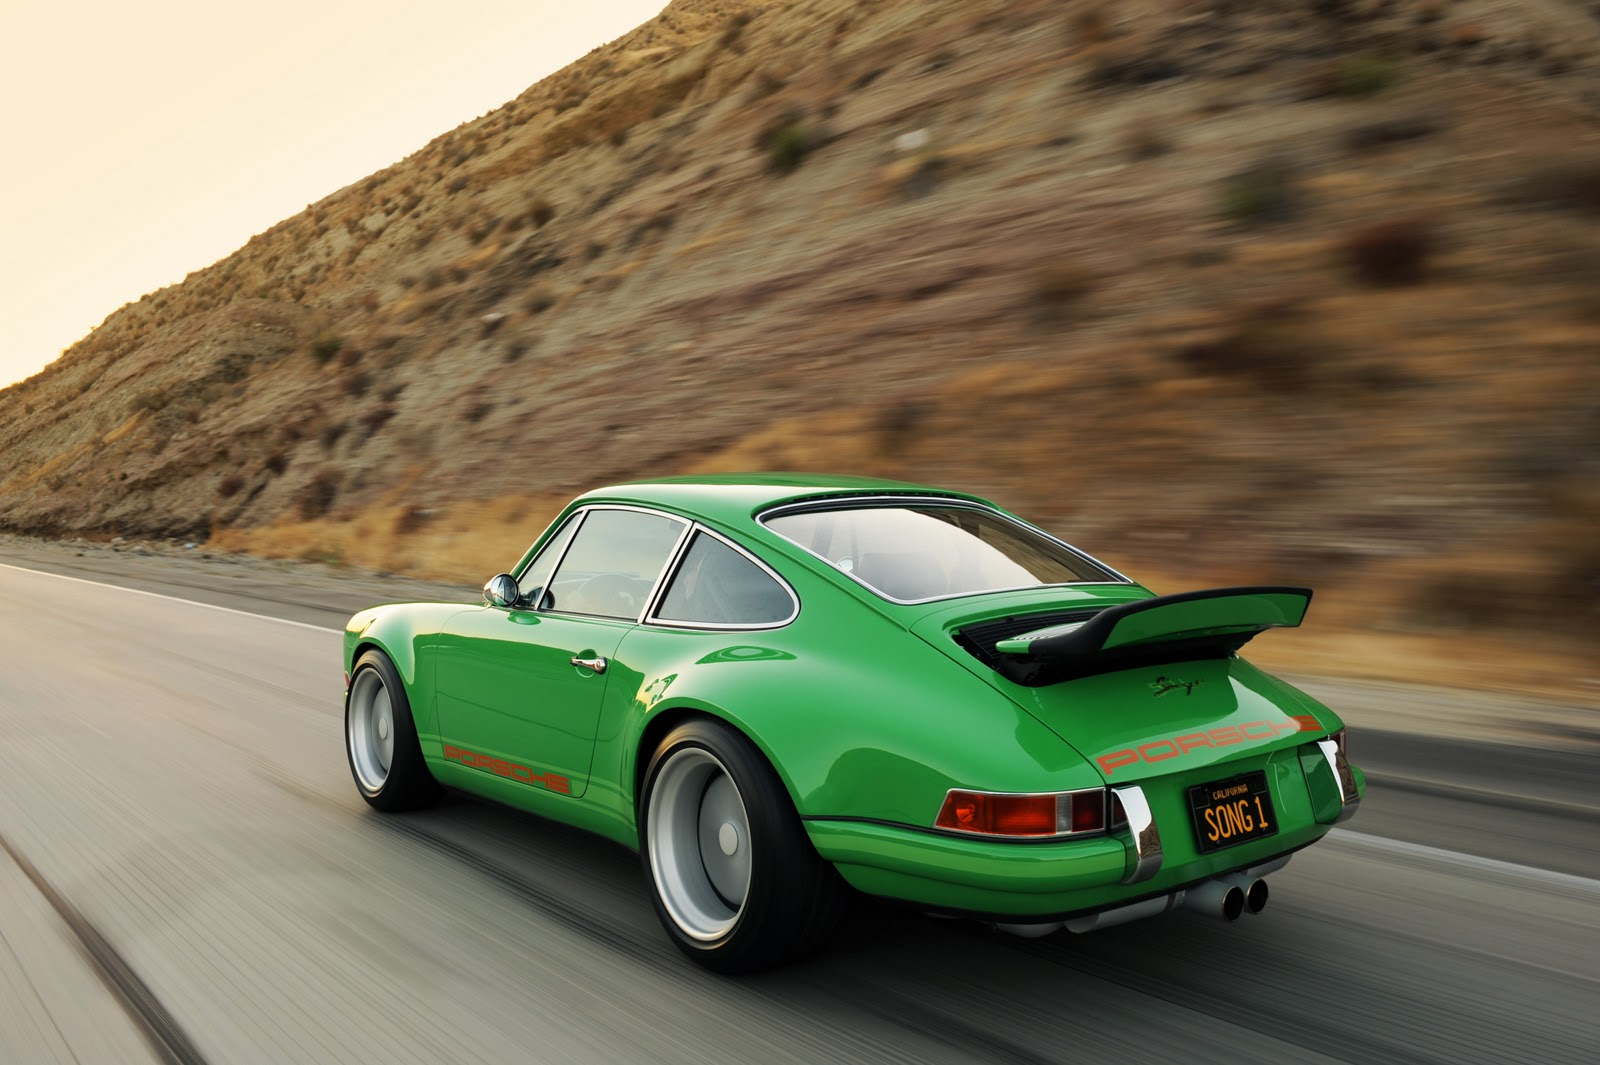 Documentary About The Singer Porsche 911 Everything You